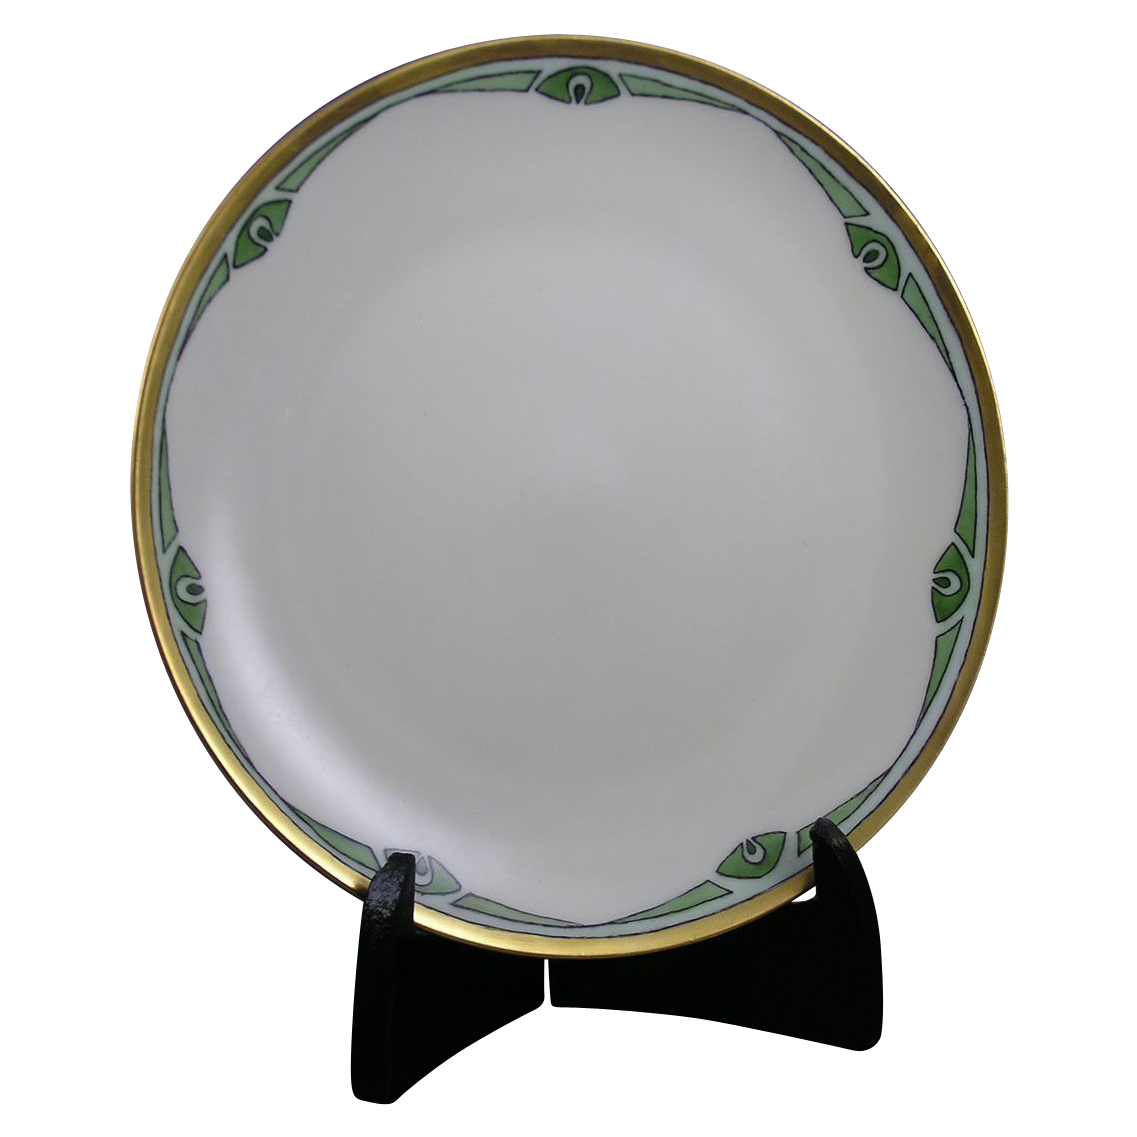 Haviland Limoges Arts & Crafts Plate (c.1894-1931)